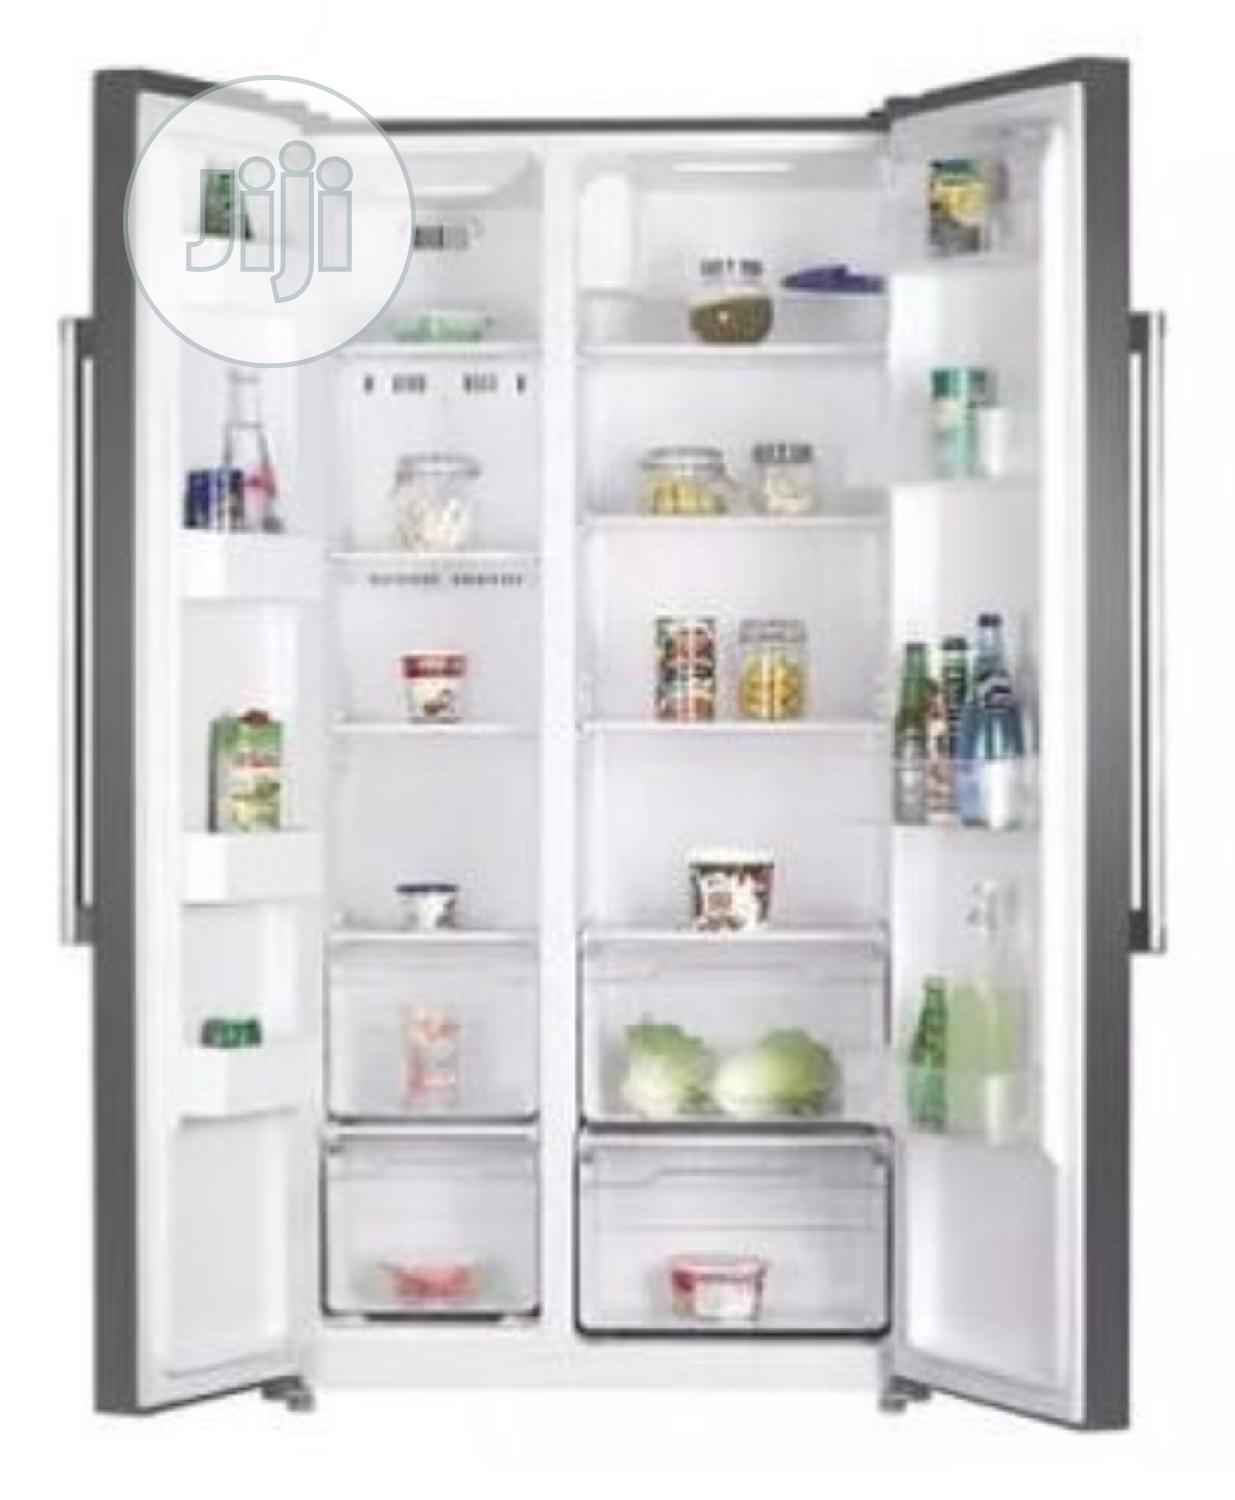 Polystar Side By Side Refrigerator Reference   Kitchen Appliances for sale in Ojo, Lagos State, Nigeria